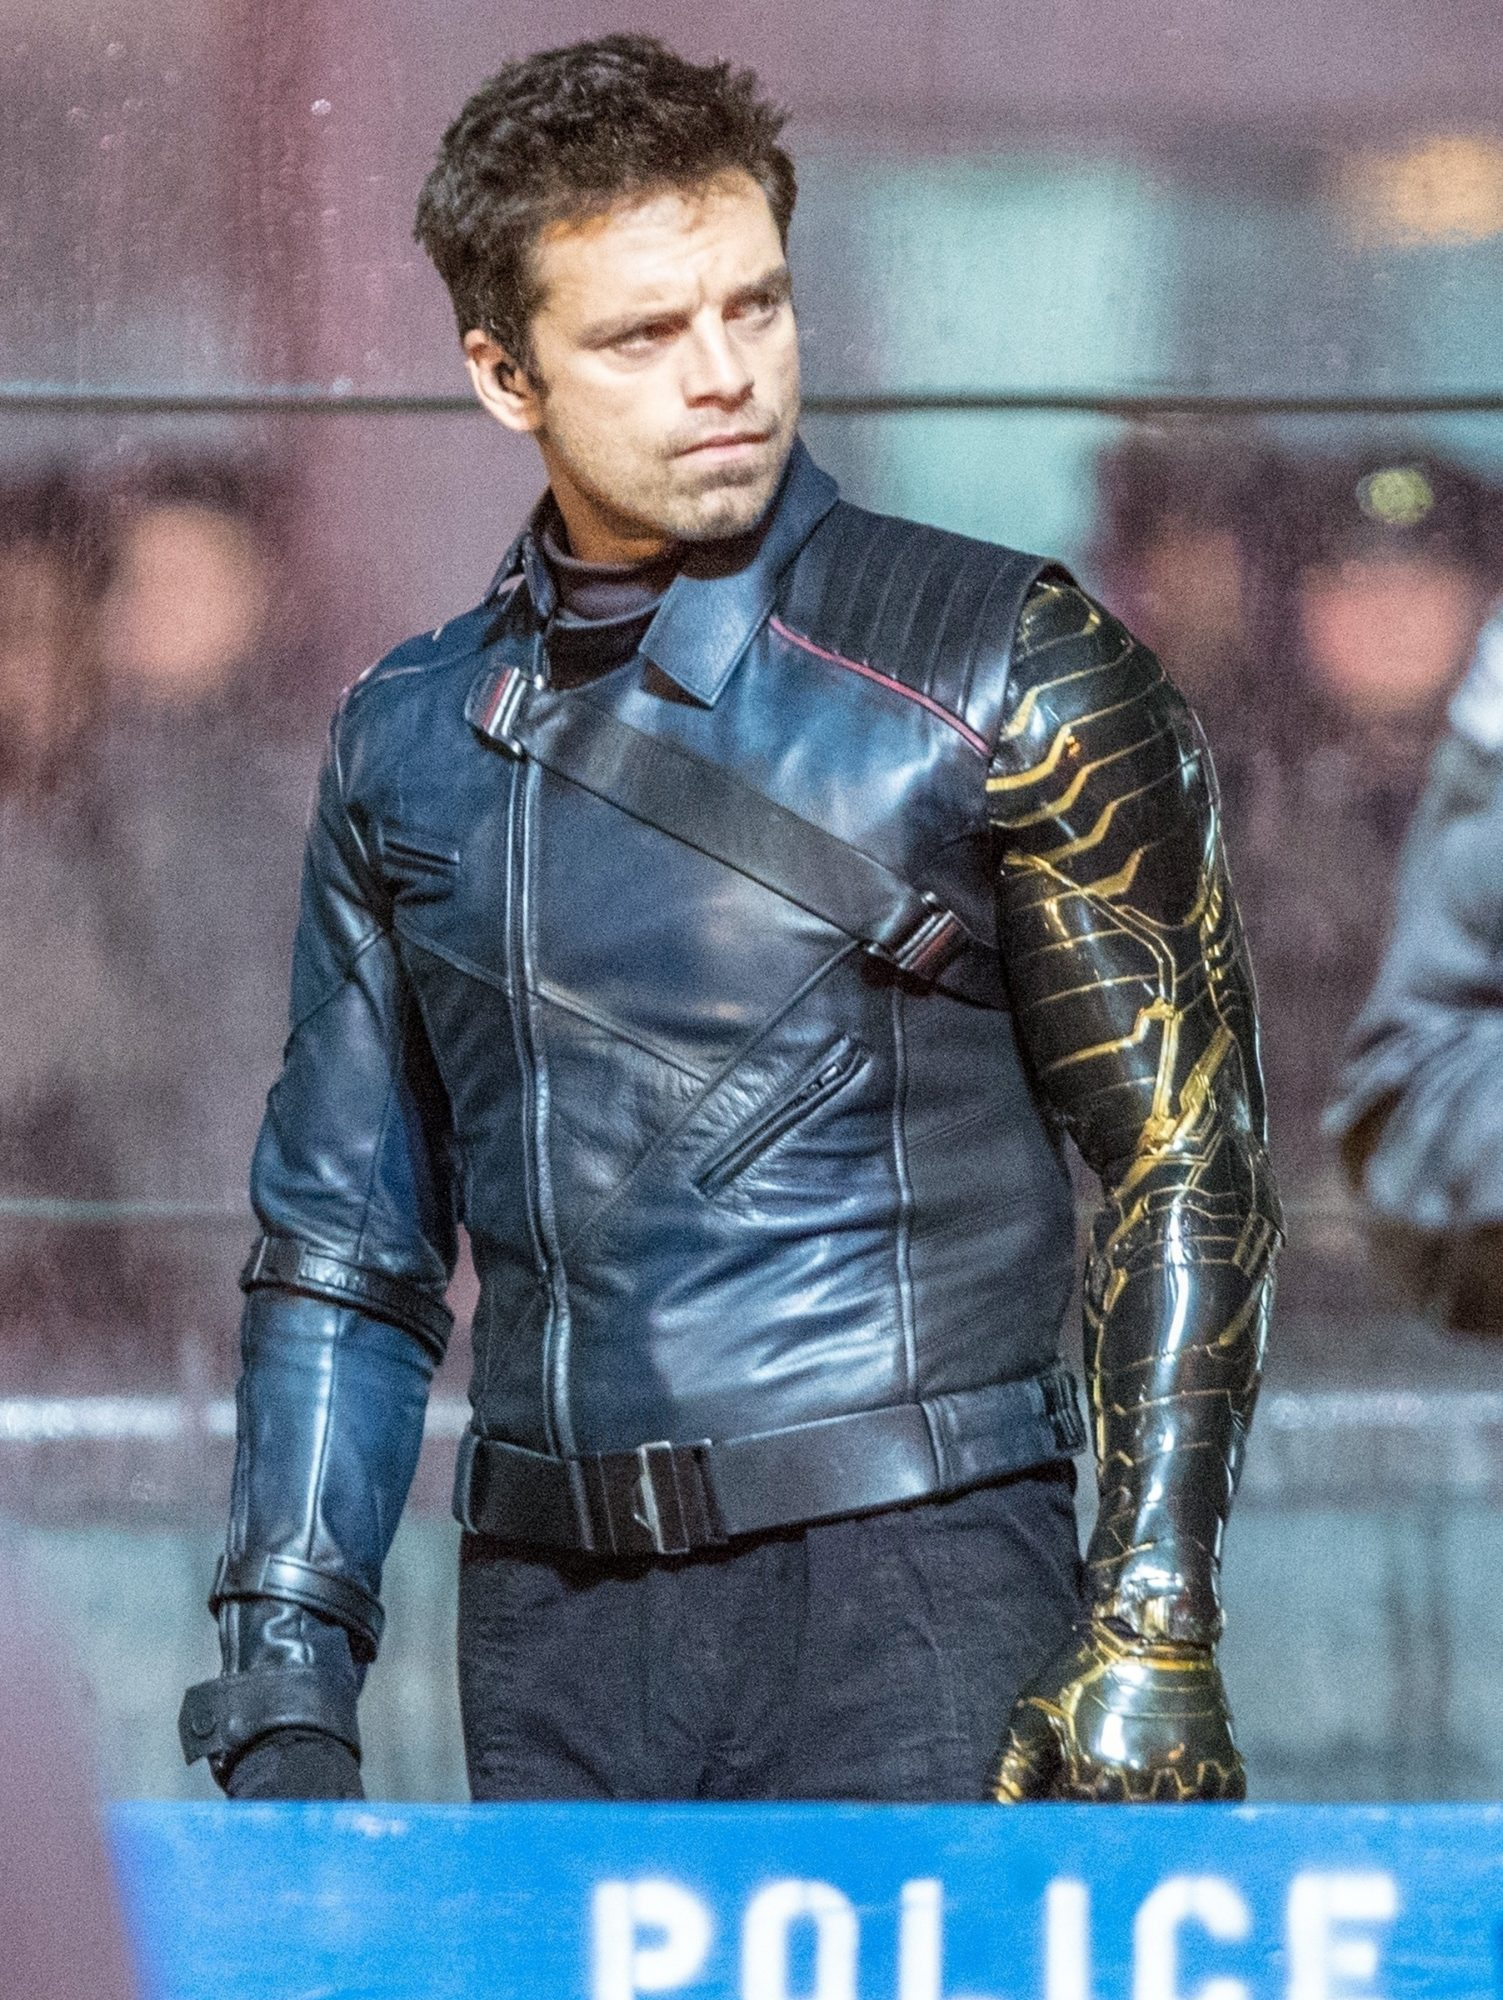 Sebastian Stan films scenes for 'The Falcon and the Winter Soldier'